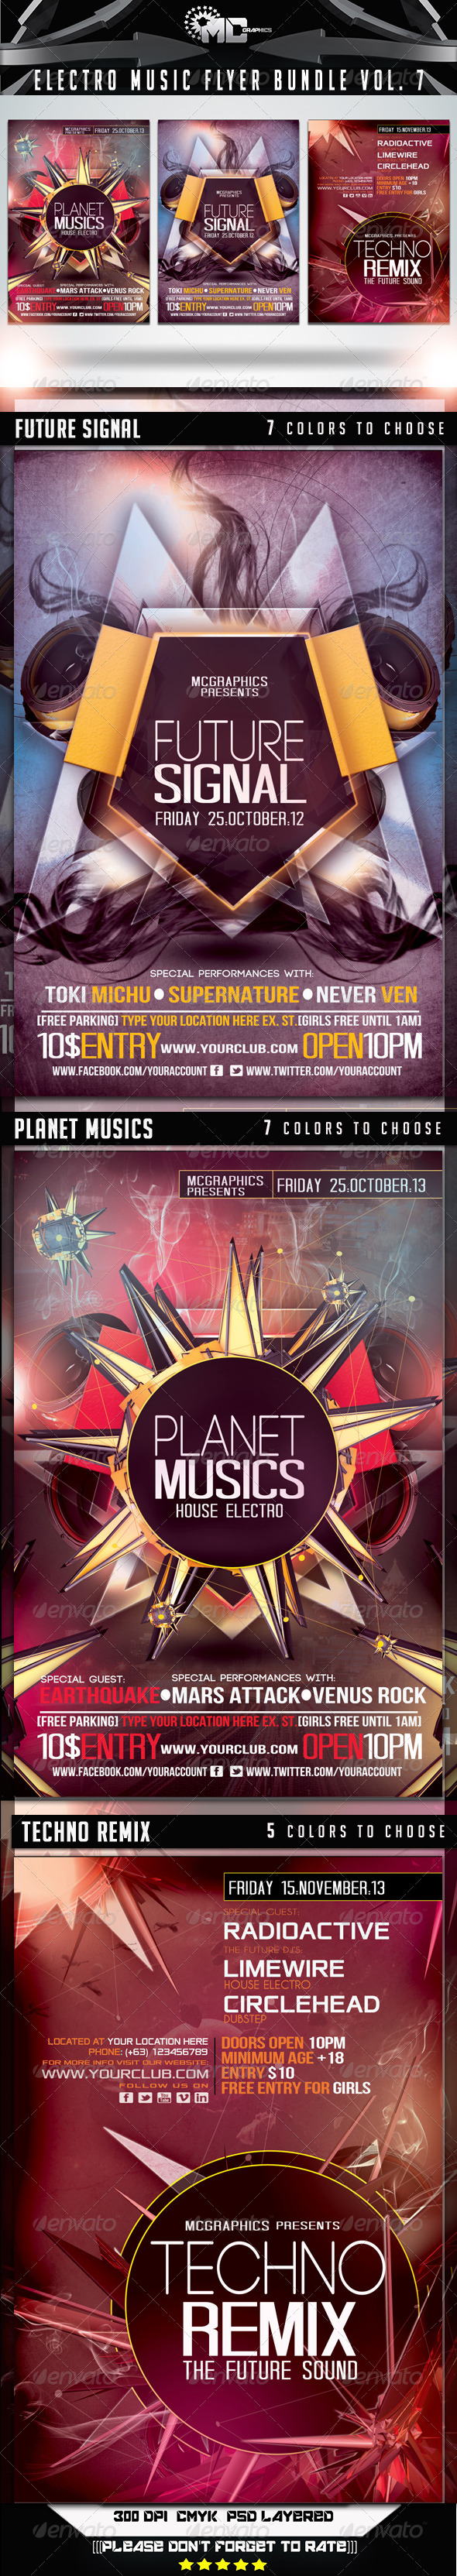 GraphicRiver Electro Music Flyer Bundle Vol 7 7269760